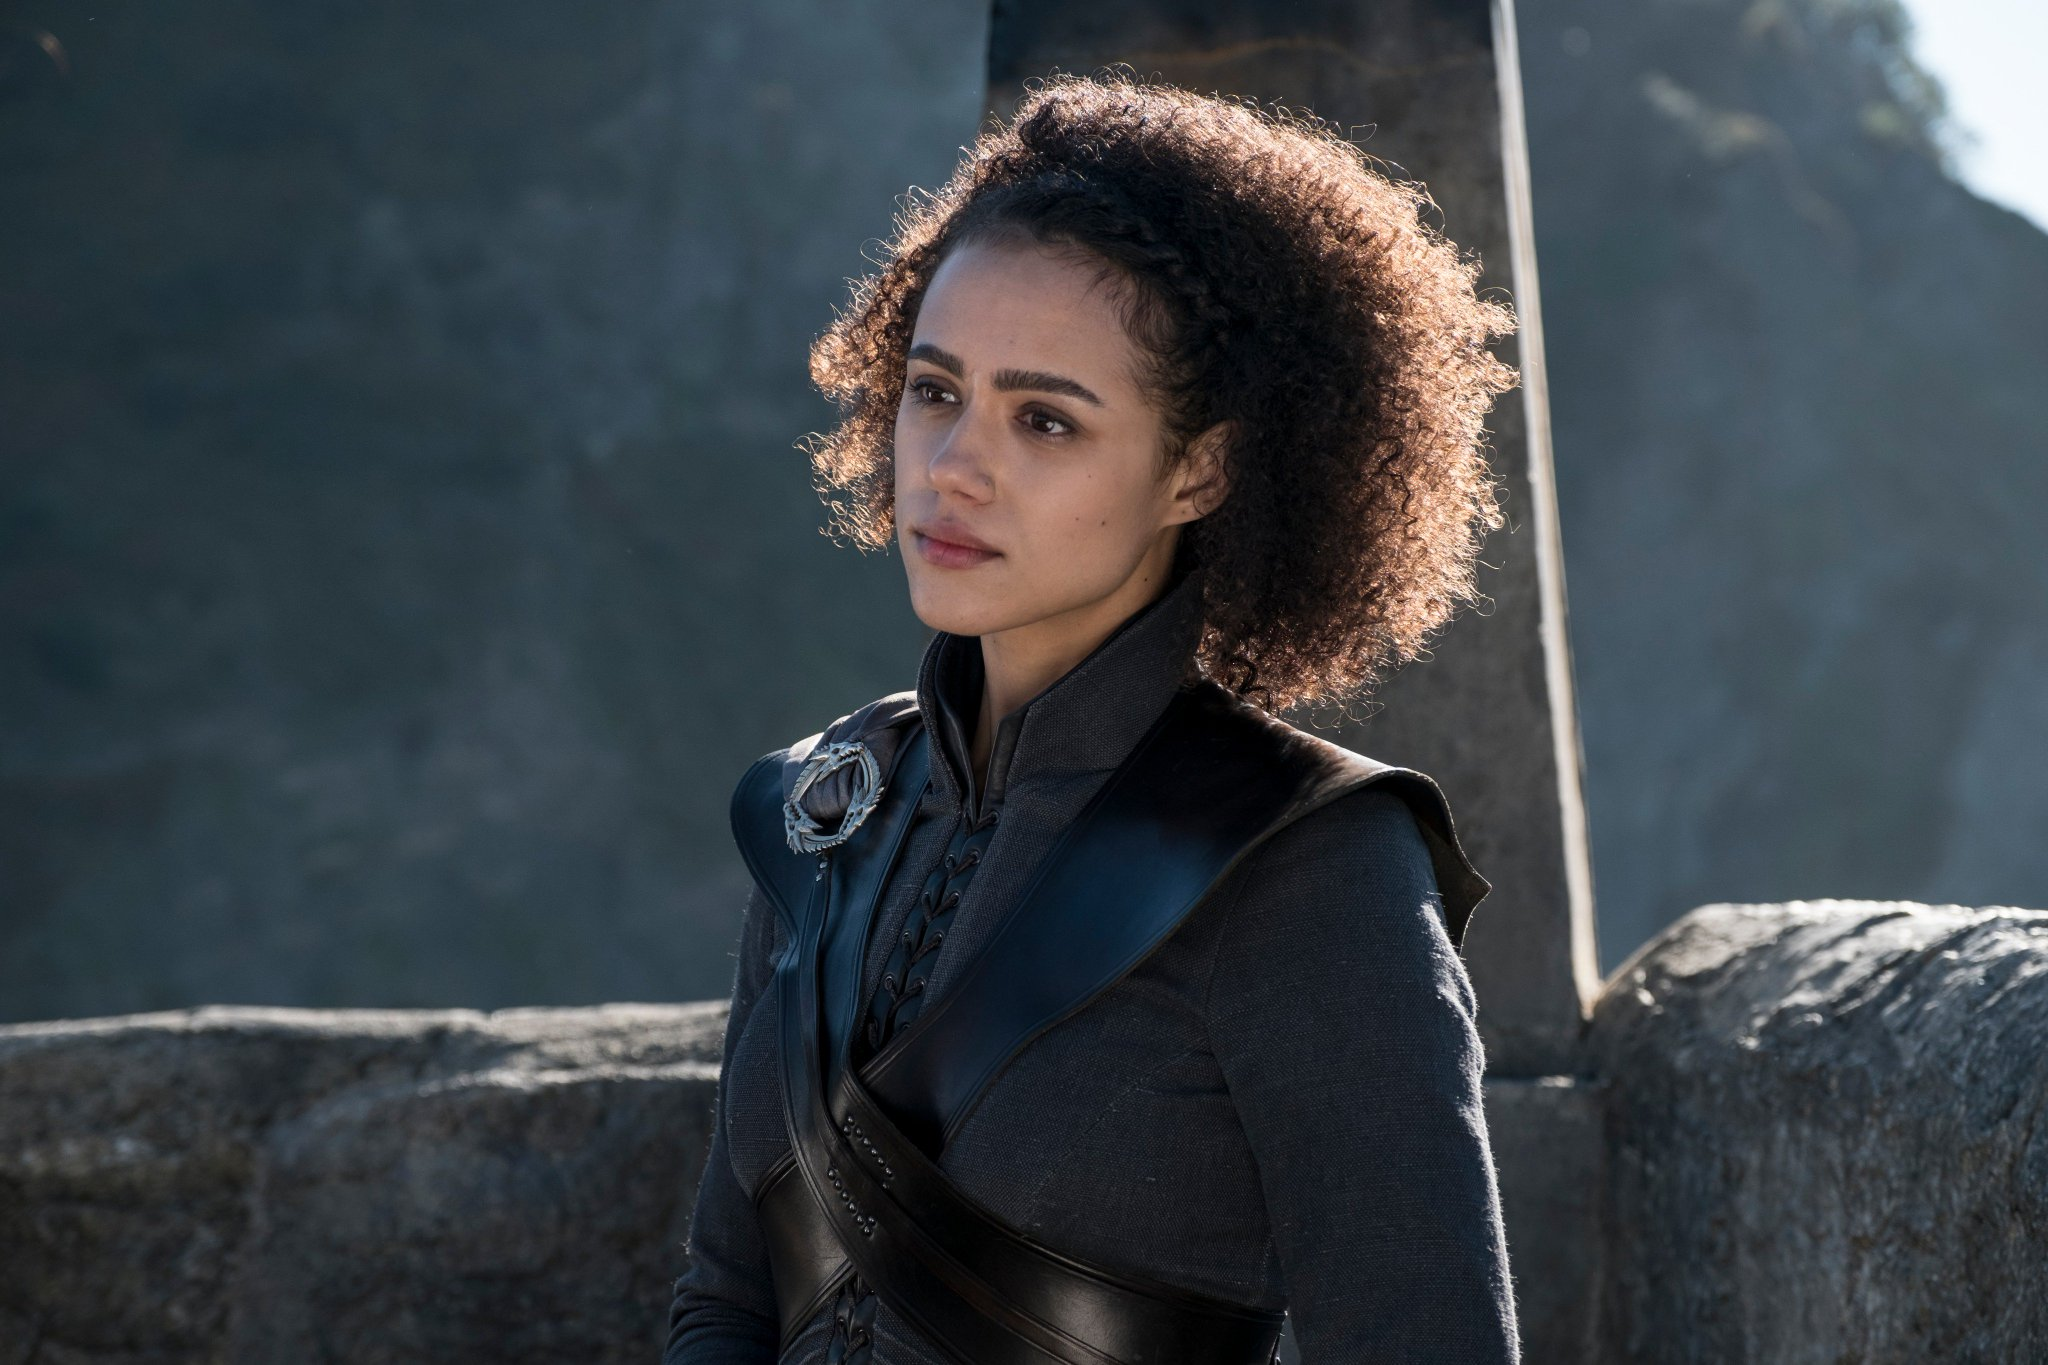 .@missnemmanuel as Missandei. #GoTS7 #GameofThrones (Photo: Macall B. Polay/HBO) https://t.co/4ddw4rreRf